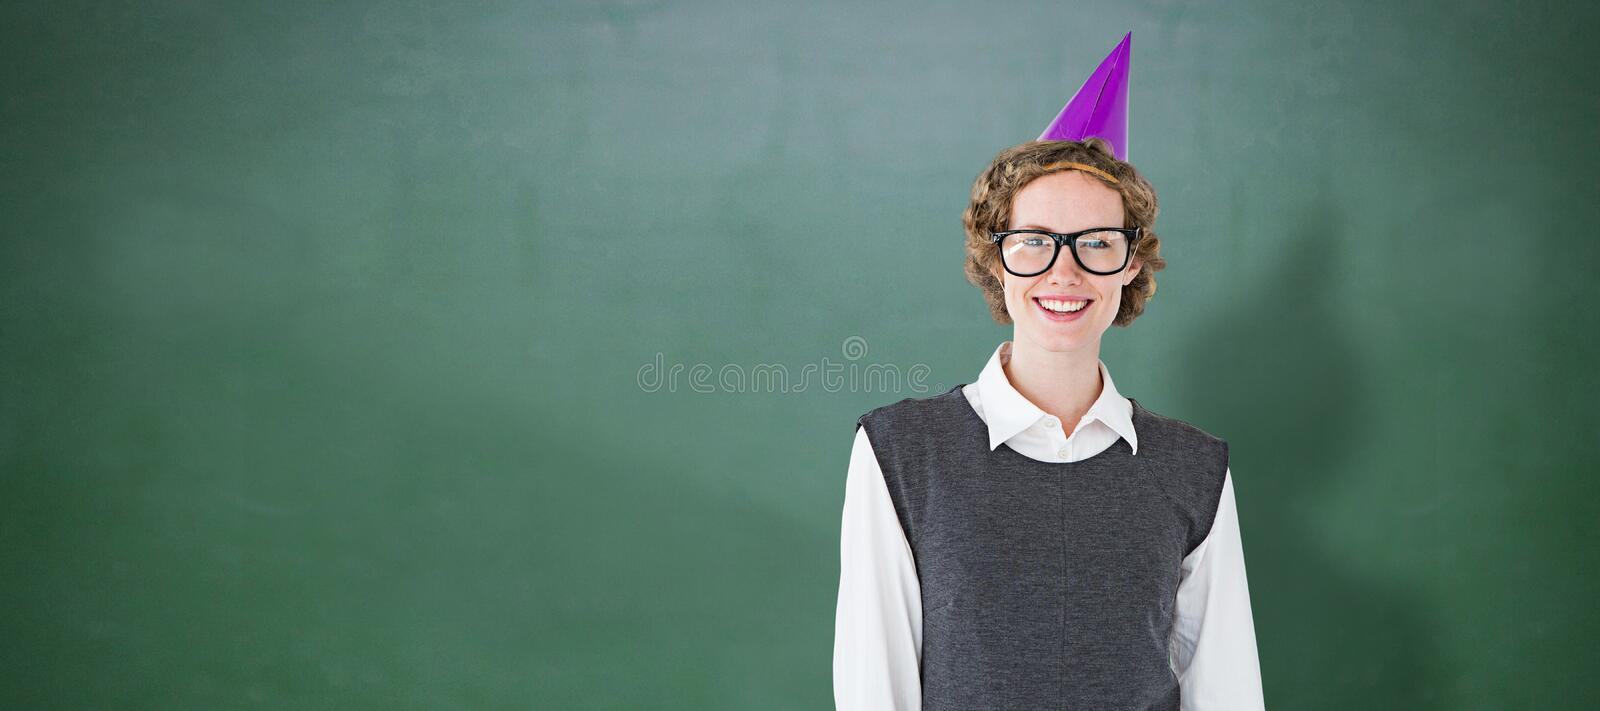 Composite image of geeky hipster wearing a party hat. Geeky hipster wearing a party hat against green chalkboard royalty free stock images